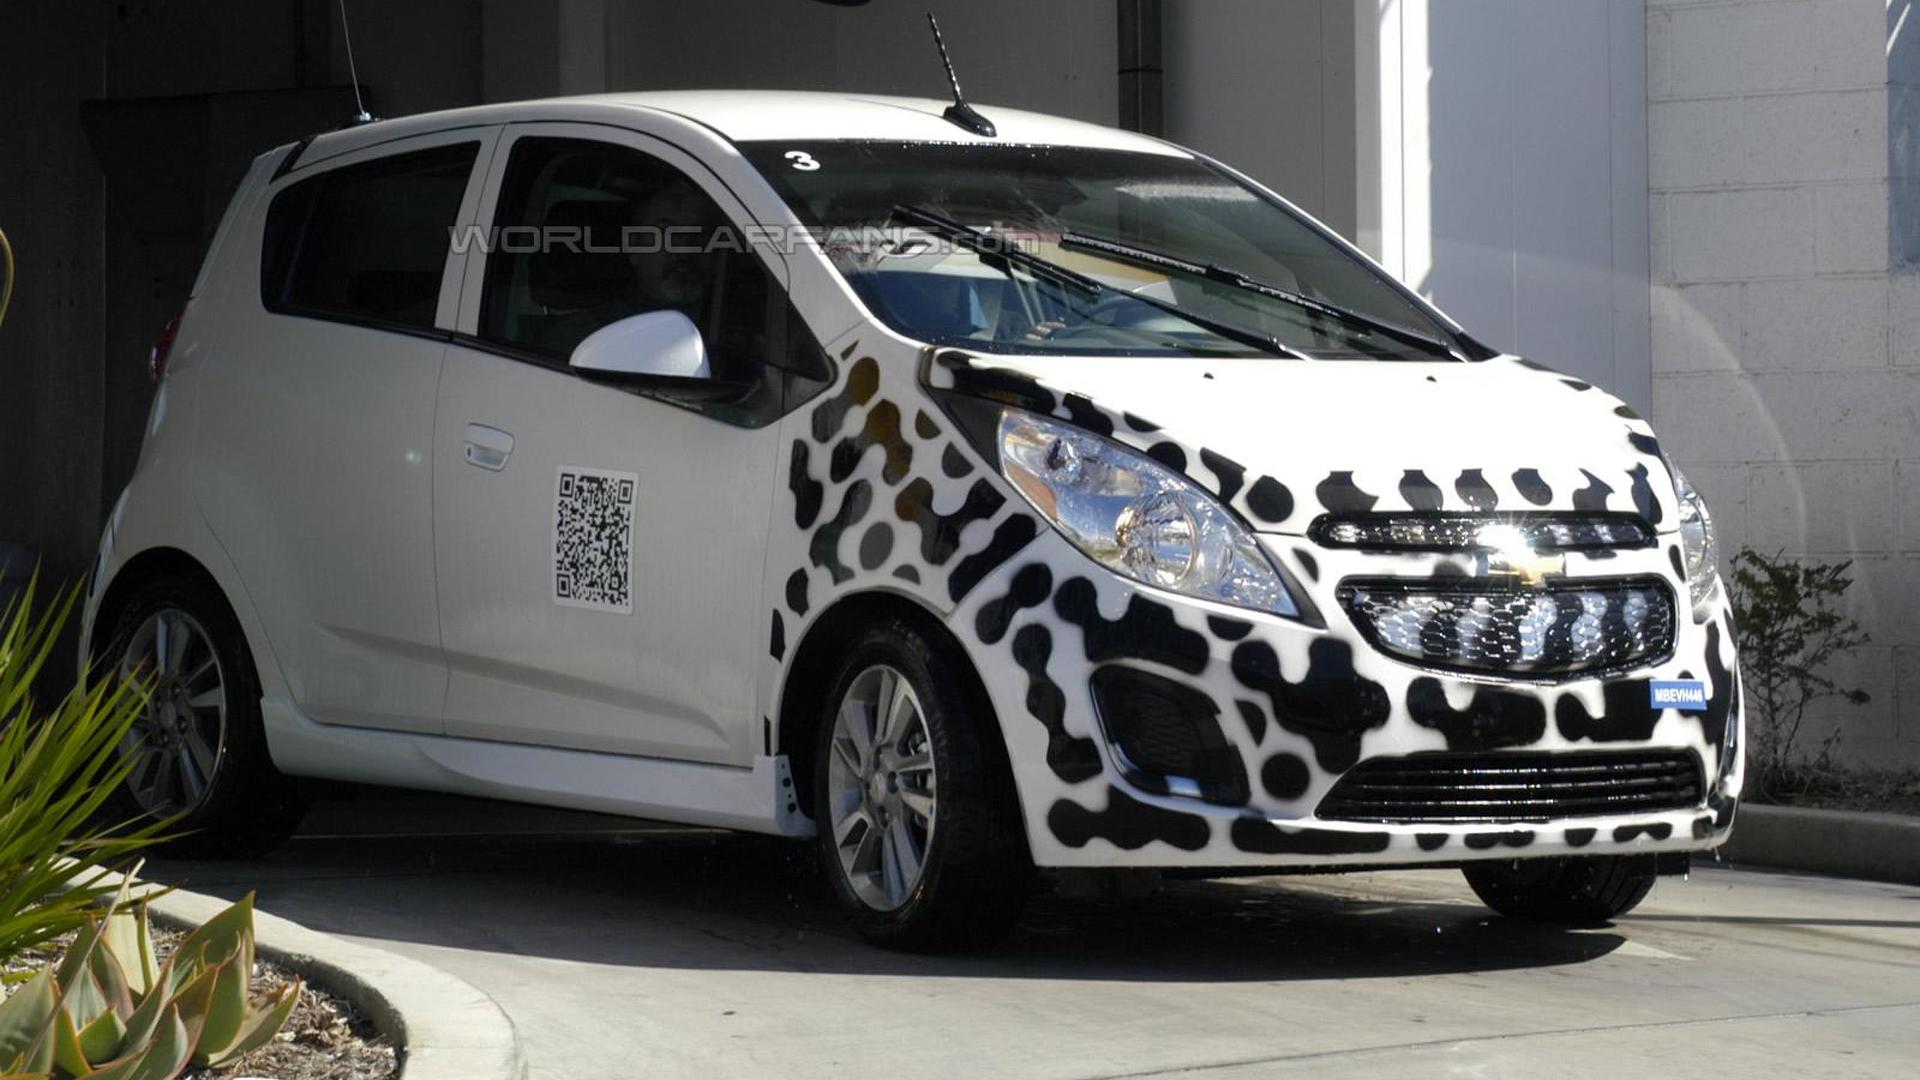 Chevy Spark EV spotted for first time